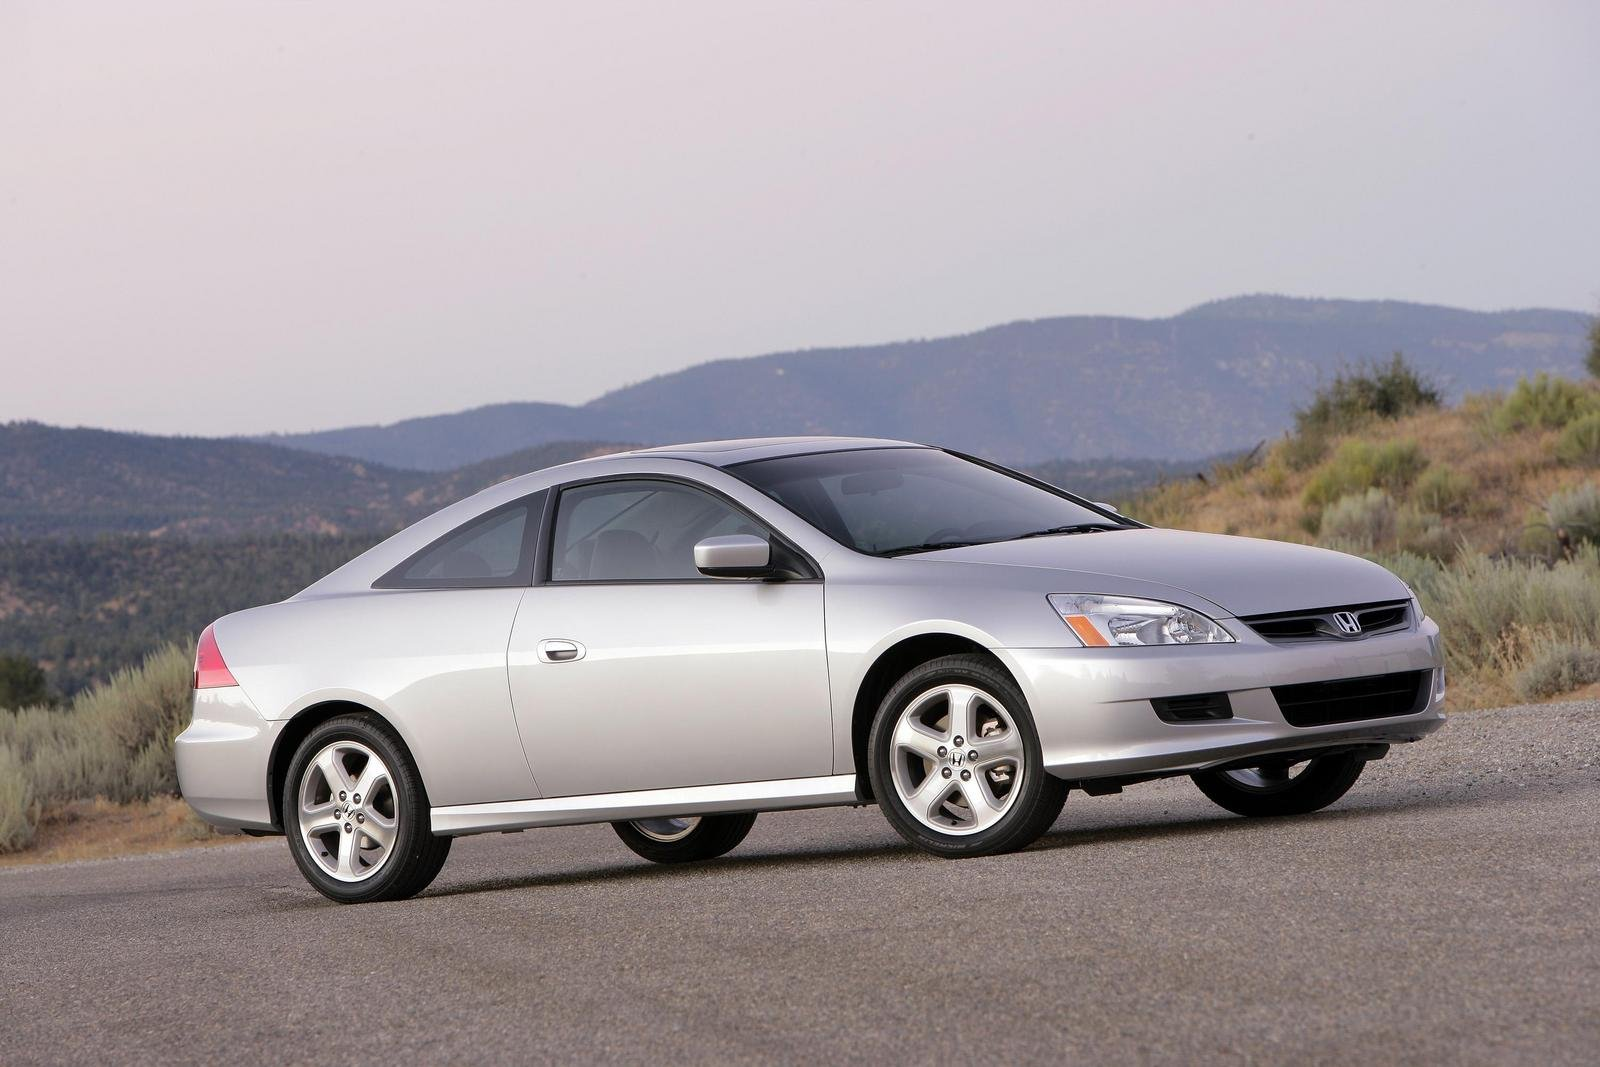 2006 honda accord coupe picture 93860 car review top. Black Bedroom Furniture Sets. Home Design Ideas